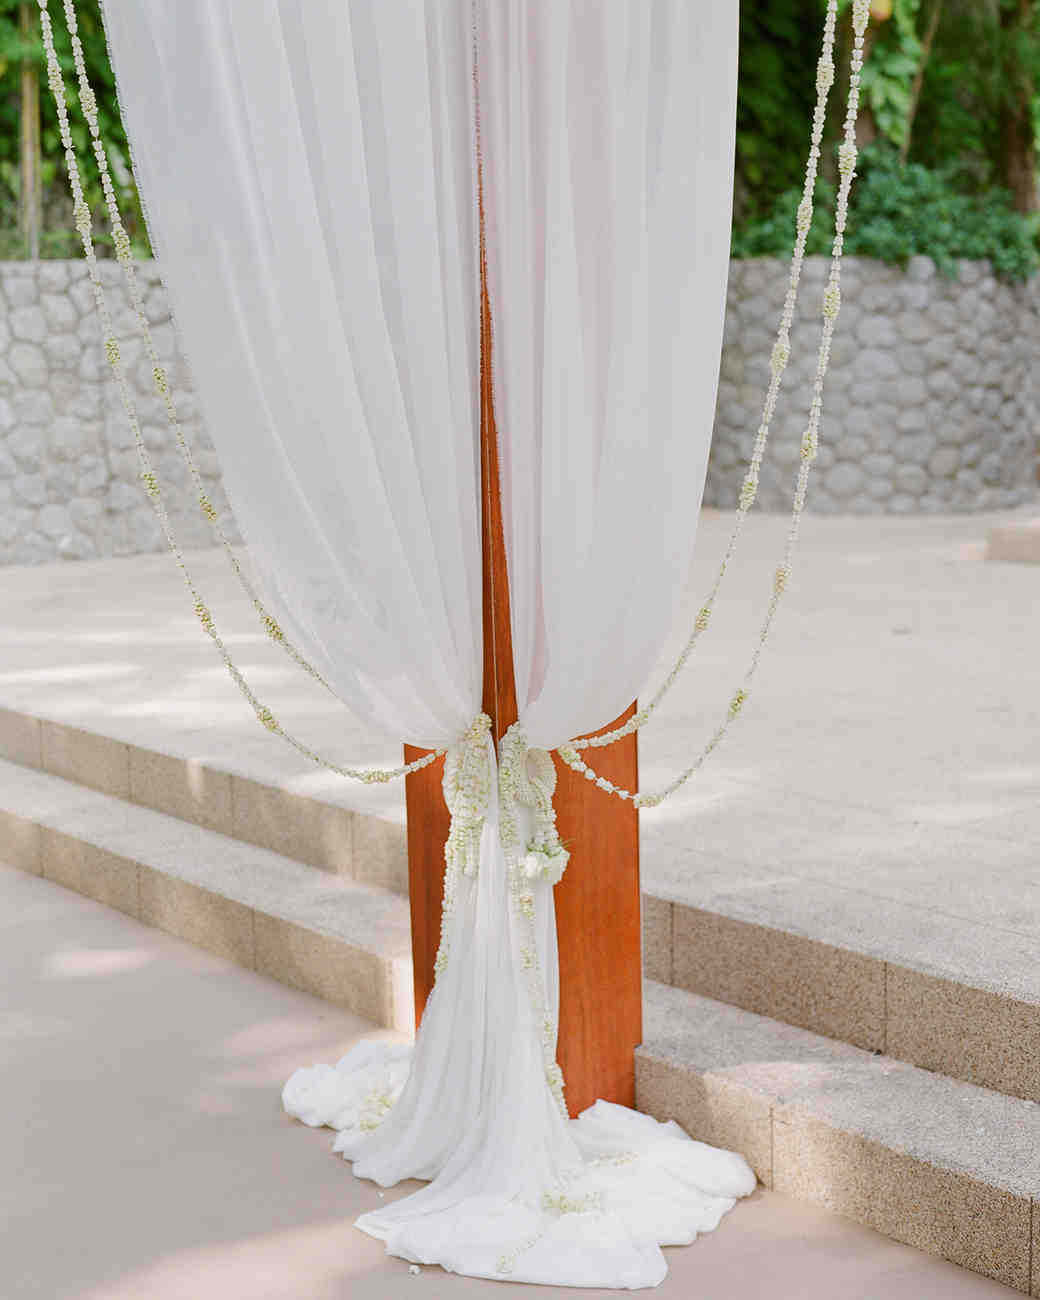 stacy brad wedding thailand draping on pole